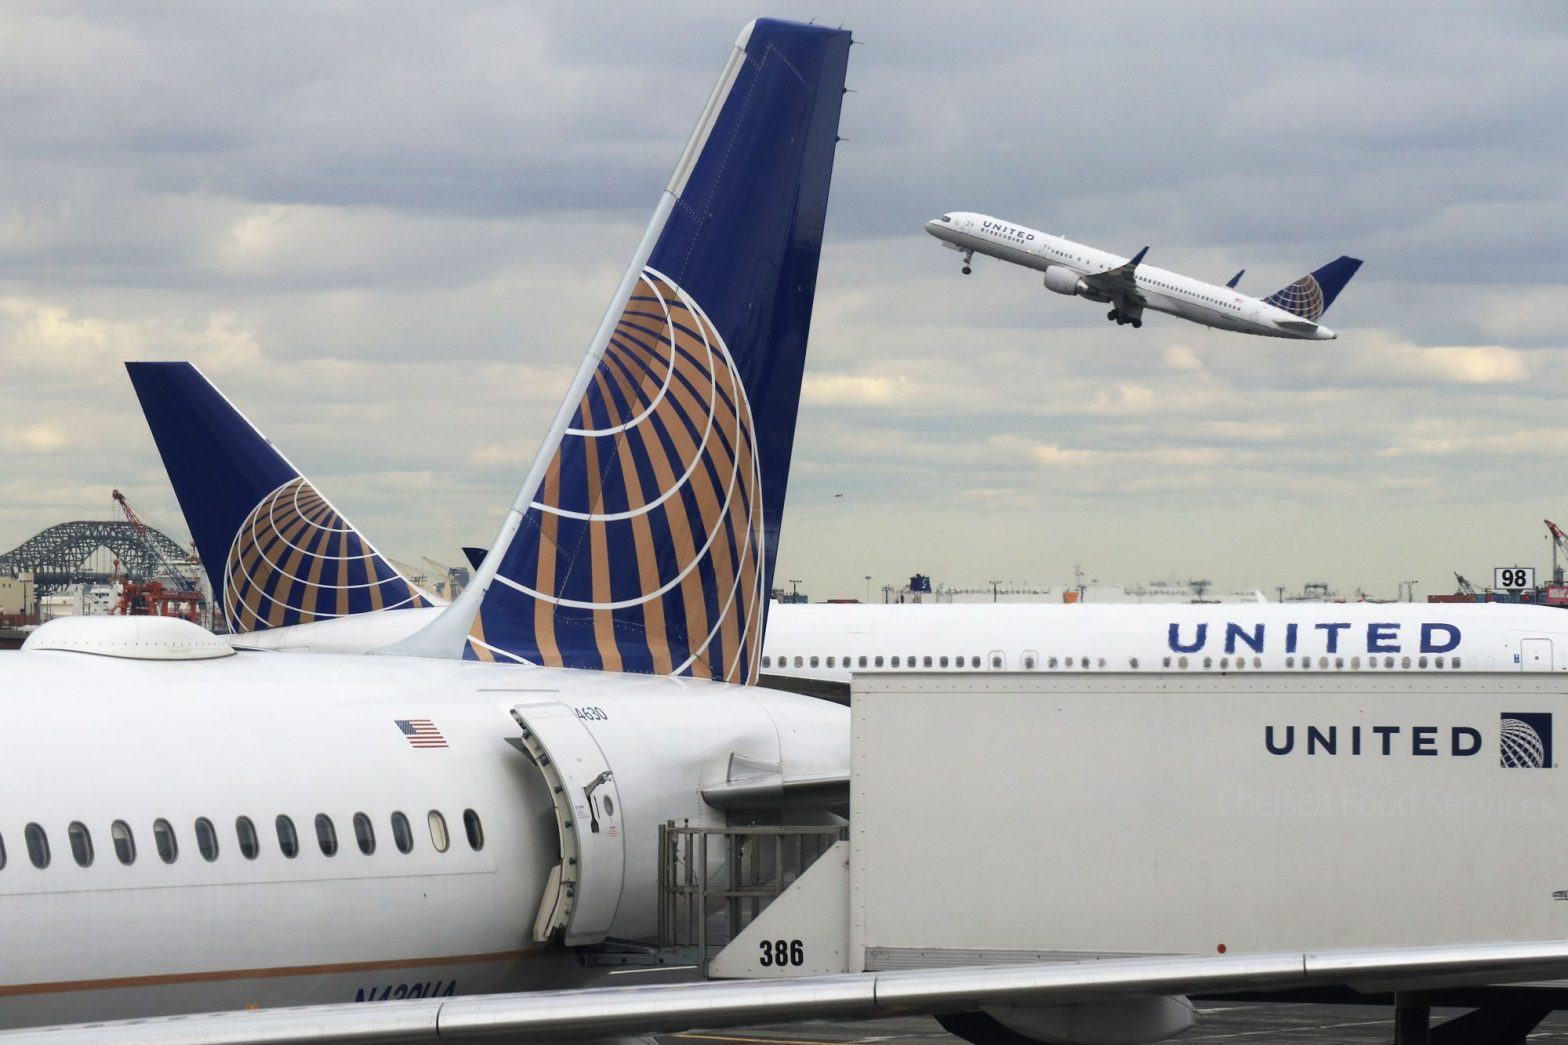 United Airlines shares rise on improved earnings forecast, quarterly beat – CNBC